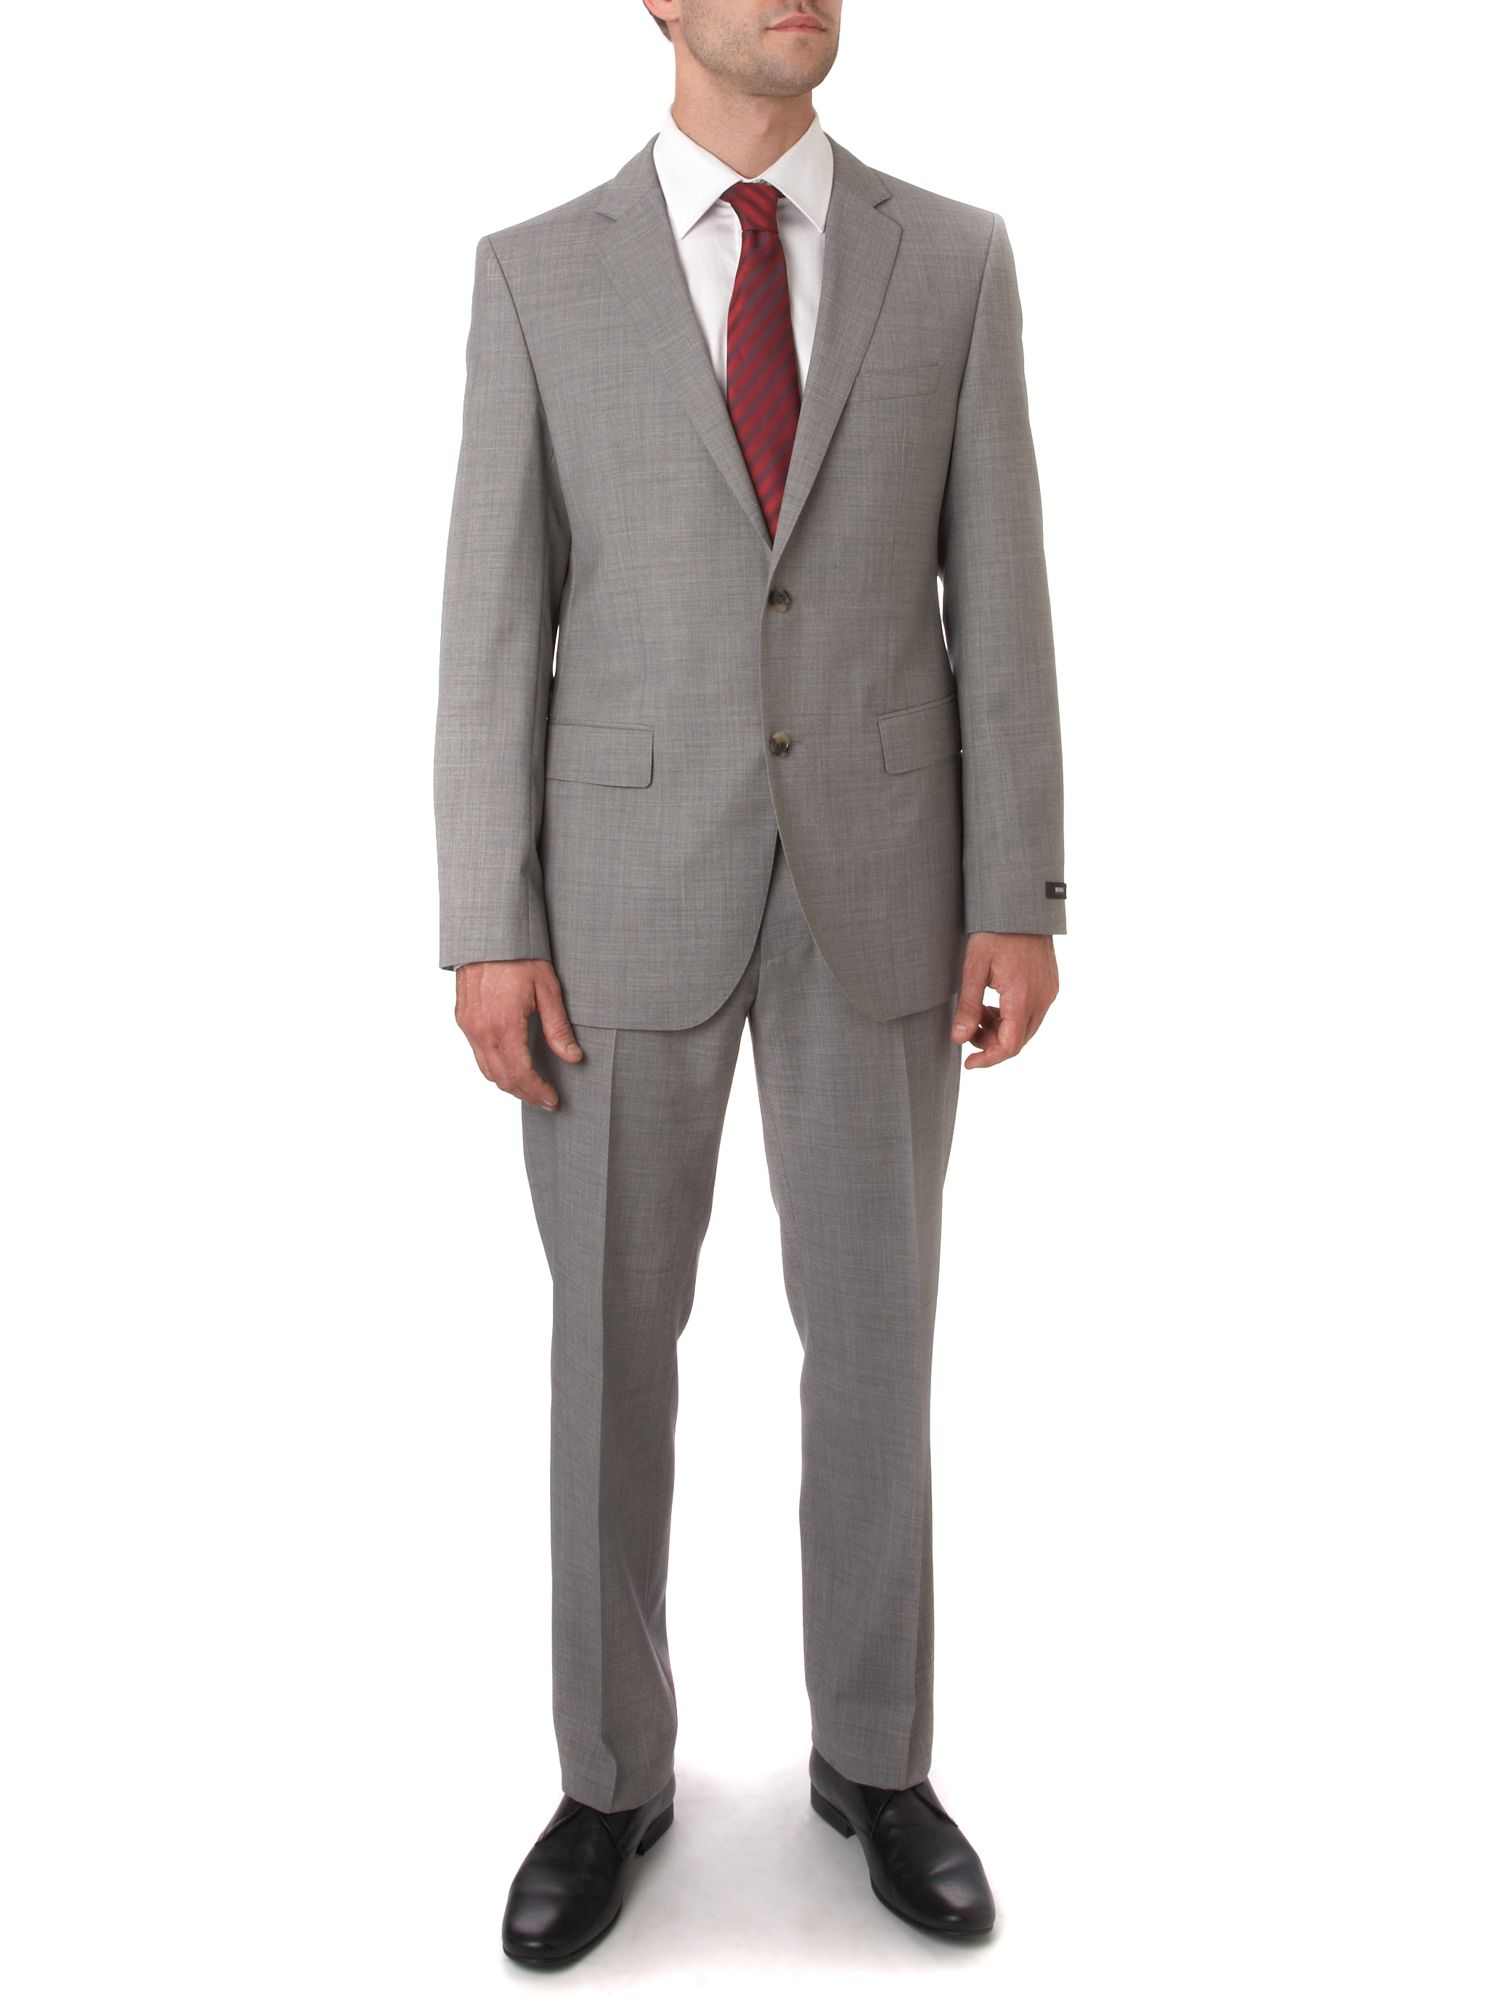 Hugo Boss GREY WOOL SUIT Grey